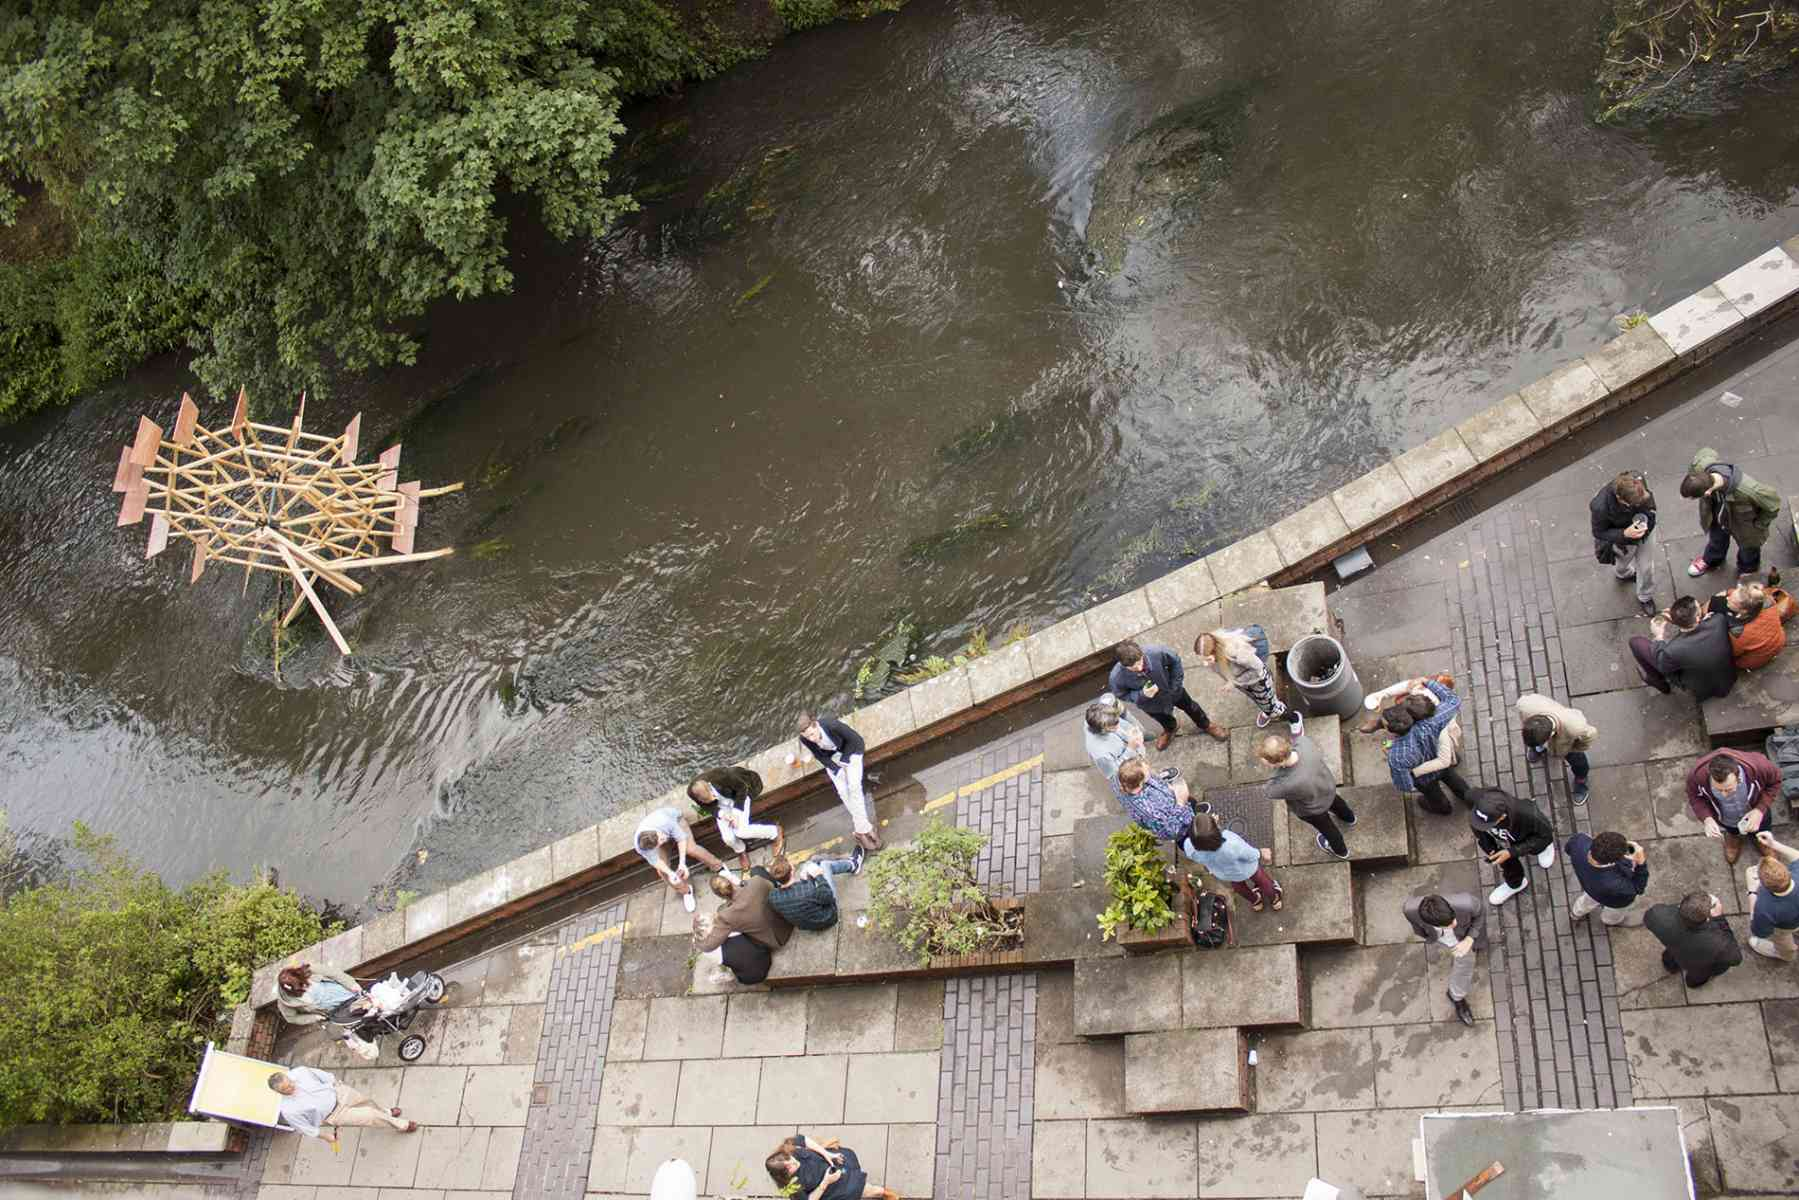 Live architecture project in situ in the Hogsmill River - Kingston School of Art, Knights Park